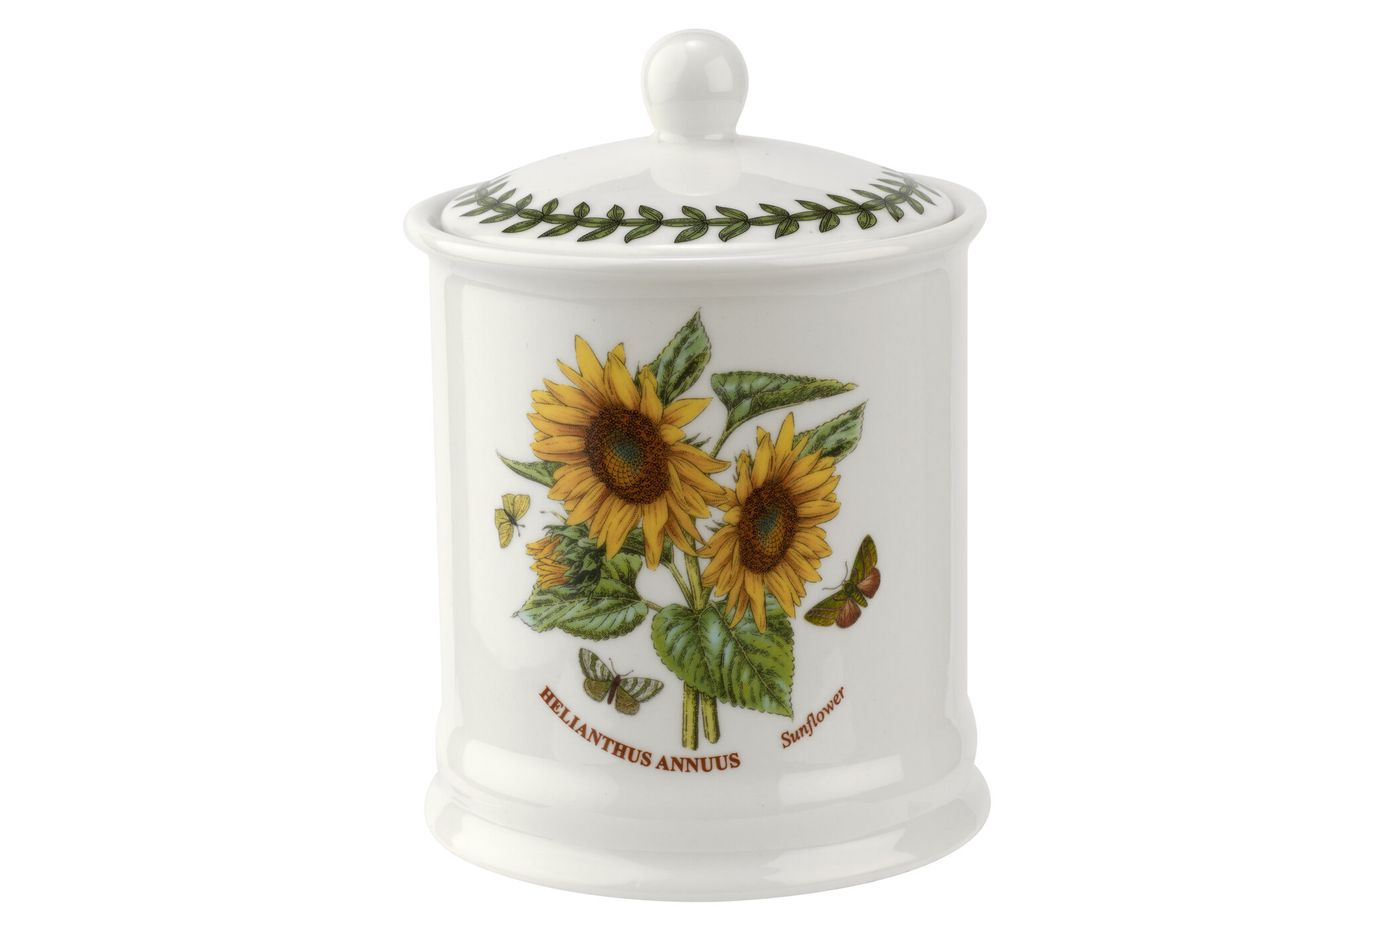 "Portmeirion Botanic Garden Storage Jar + Lid Sunflower 4 x 5 3/4"" thumb 1"